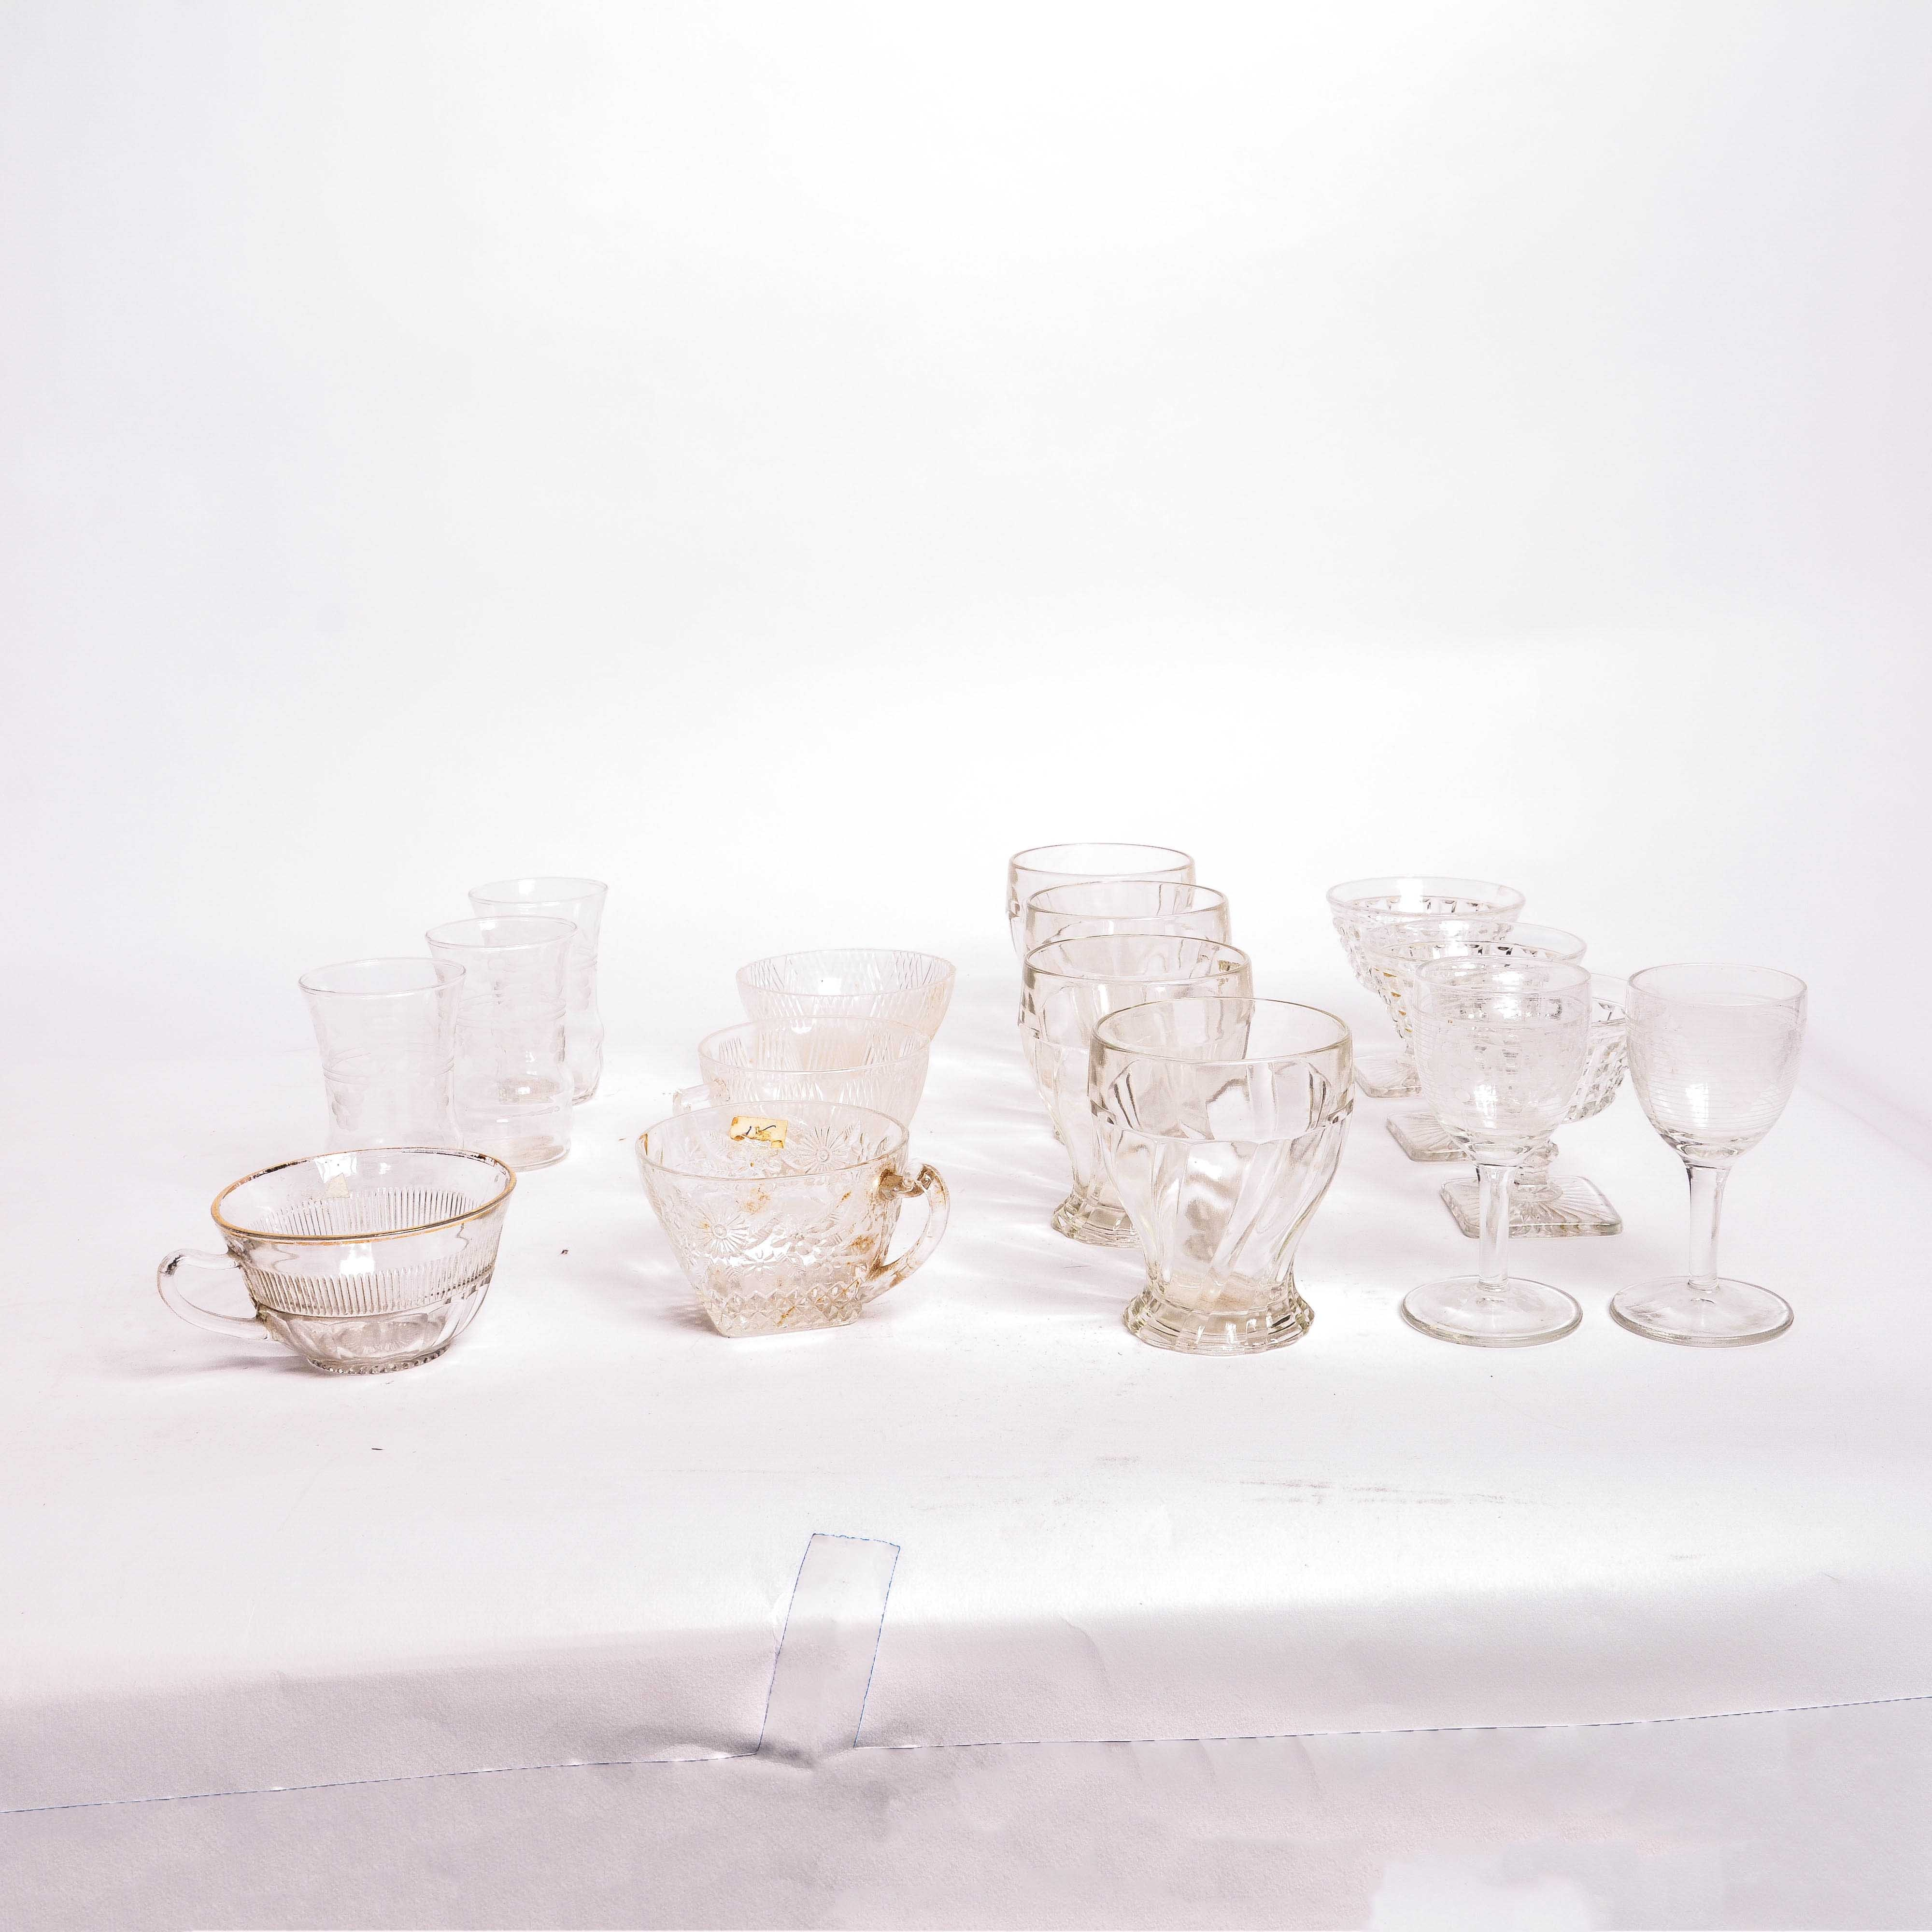 Assortment of Vintage Clear Pressed Glassware